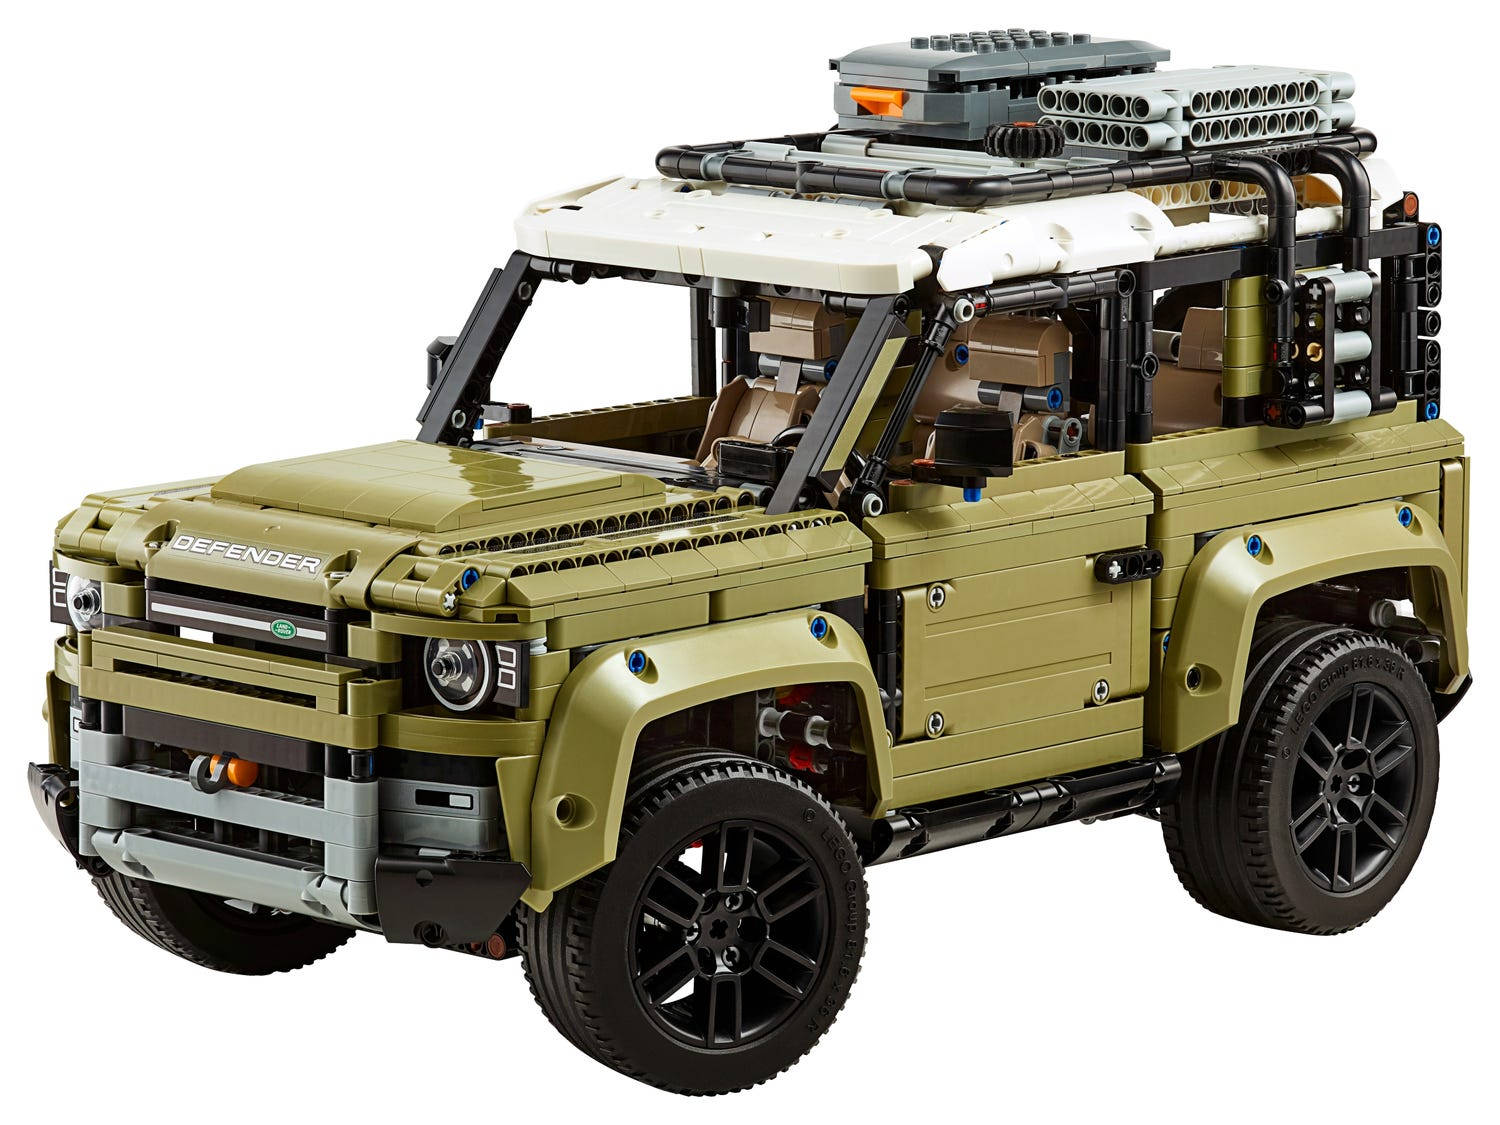 Land Rover Defender 42110 Technic Buy Online At The Official Lego Shop Us